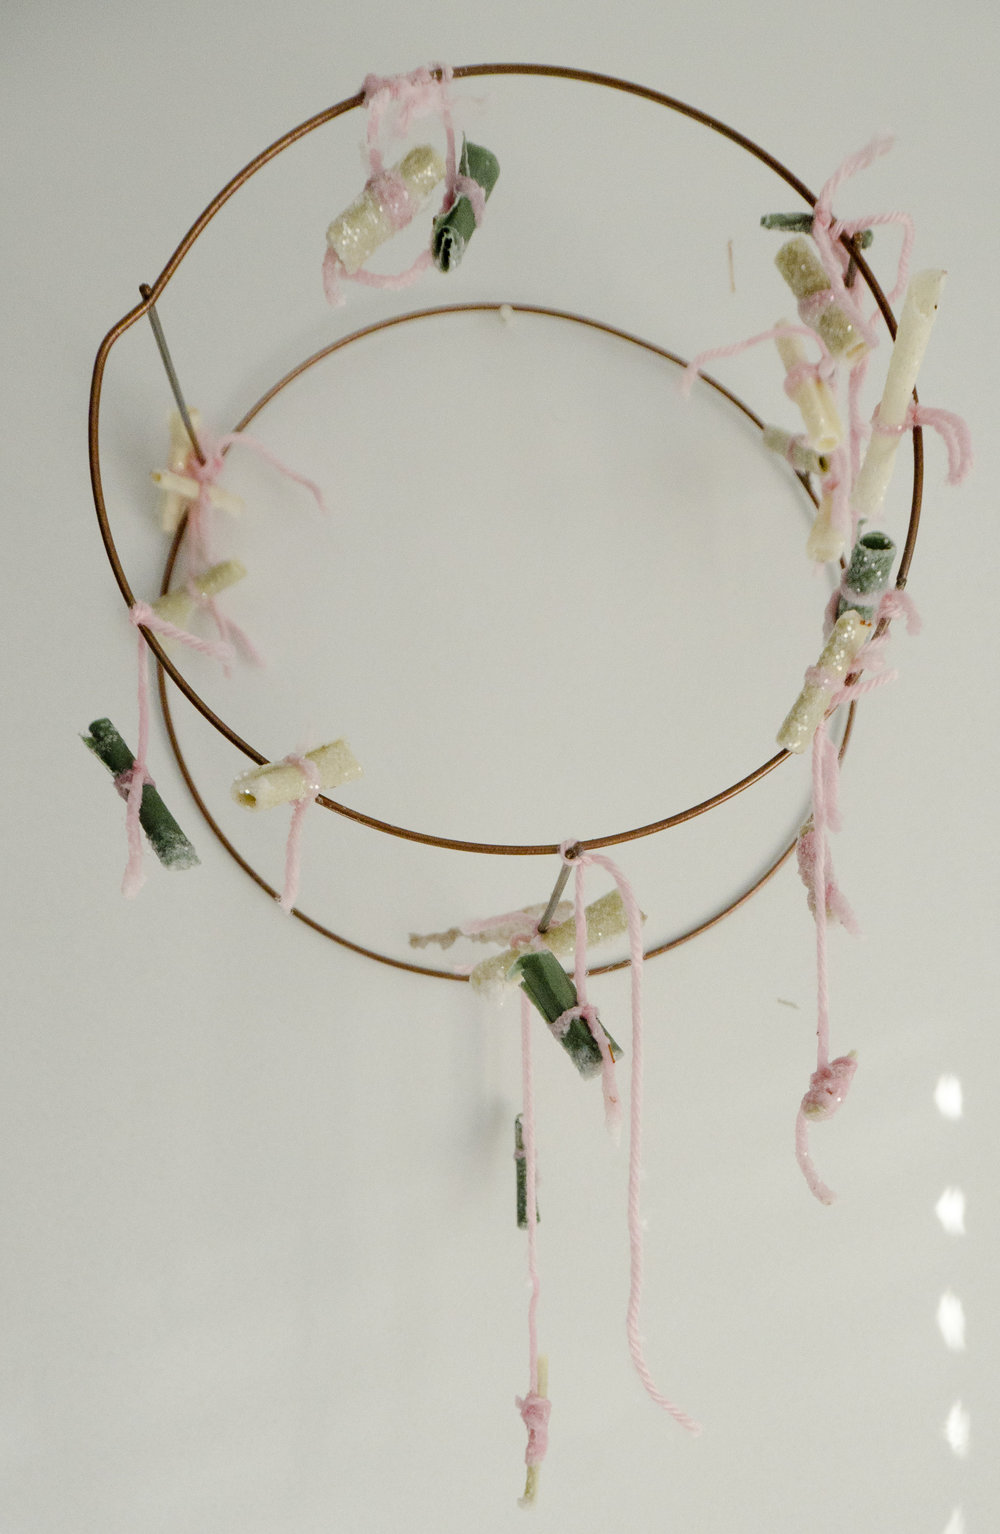 For Protection and Affection   2018  Wax, herbs, glitter, yarn, pencil, and paper, on wire armature  the artifact from the performance piece, containing the charms made during the event